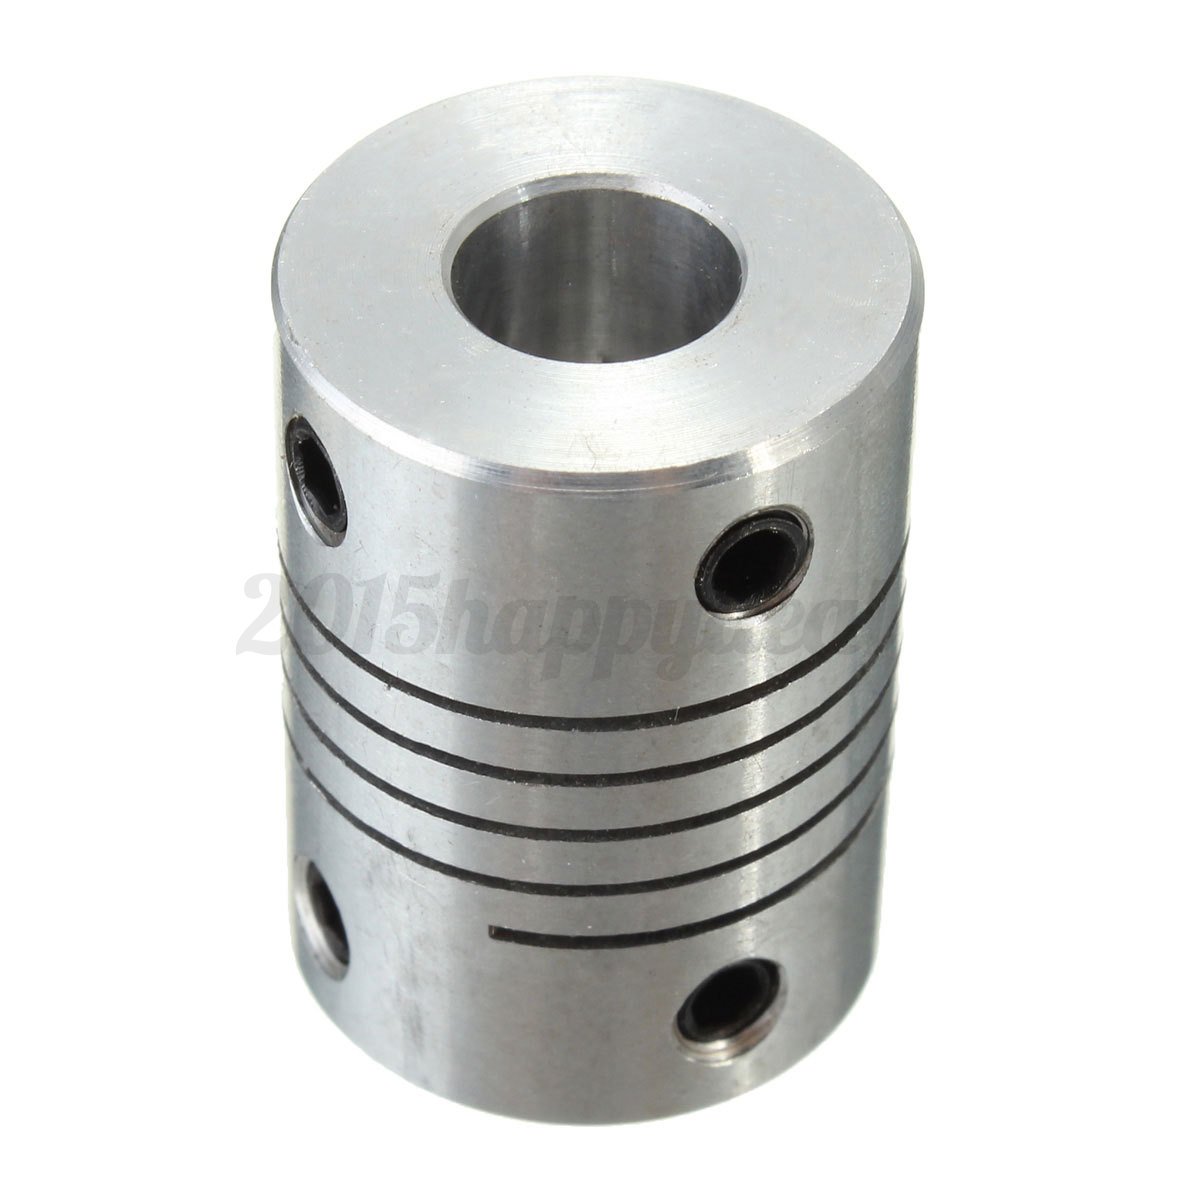 5 6 flexible shaft coupling rigid cnc stepper